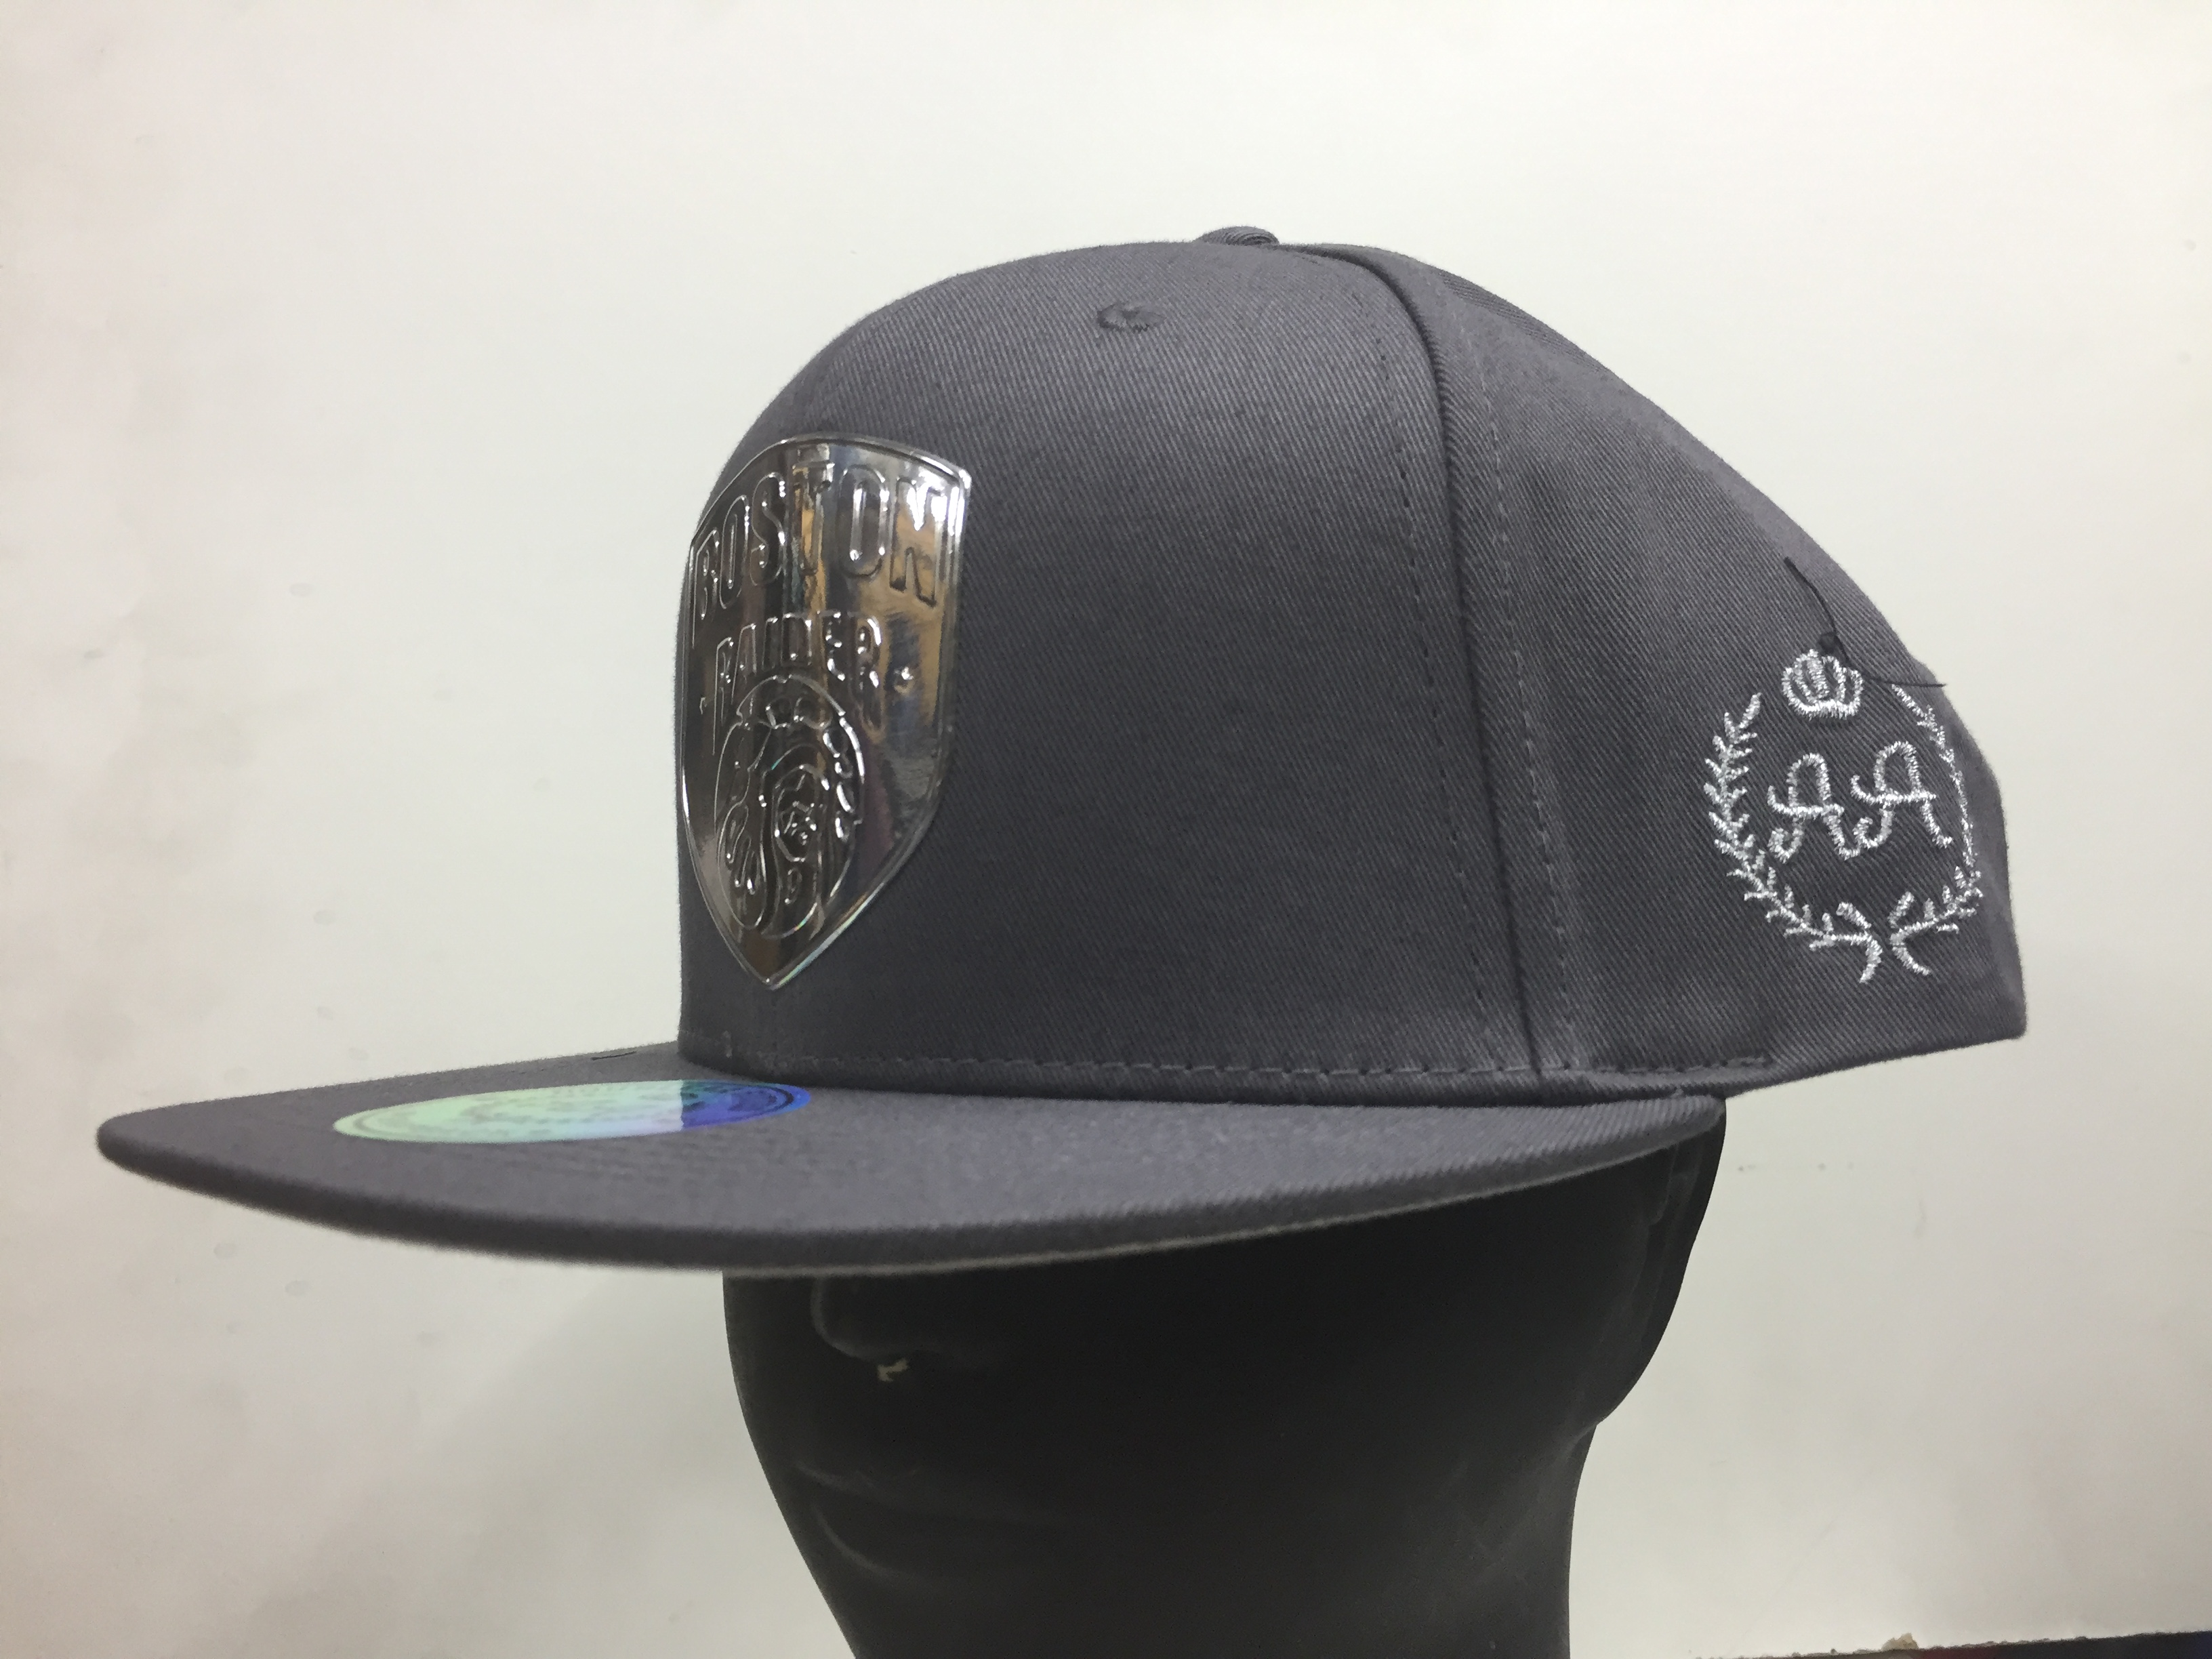 DOBLE AA BOSTON RAIDER GRIS SNAPBACK - Gorrilandia cadcd488ee5